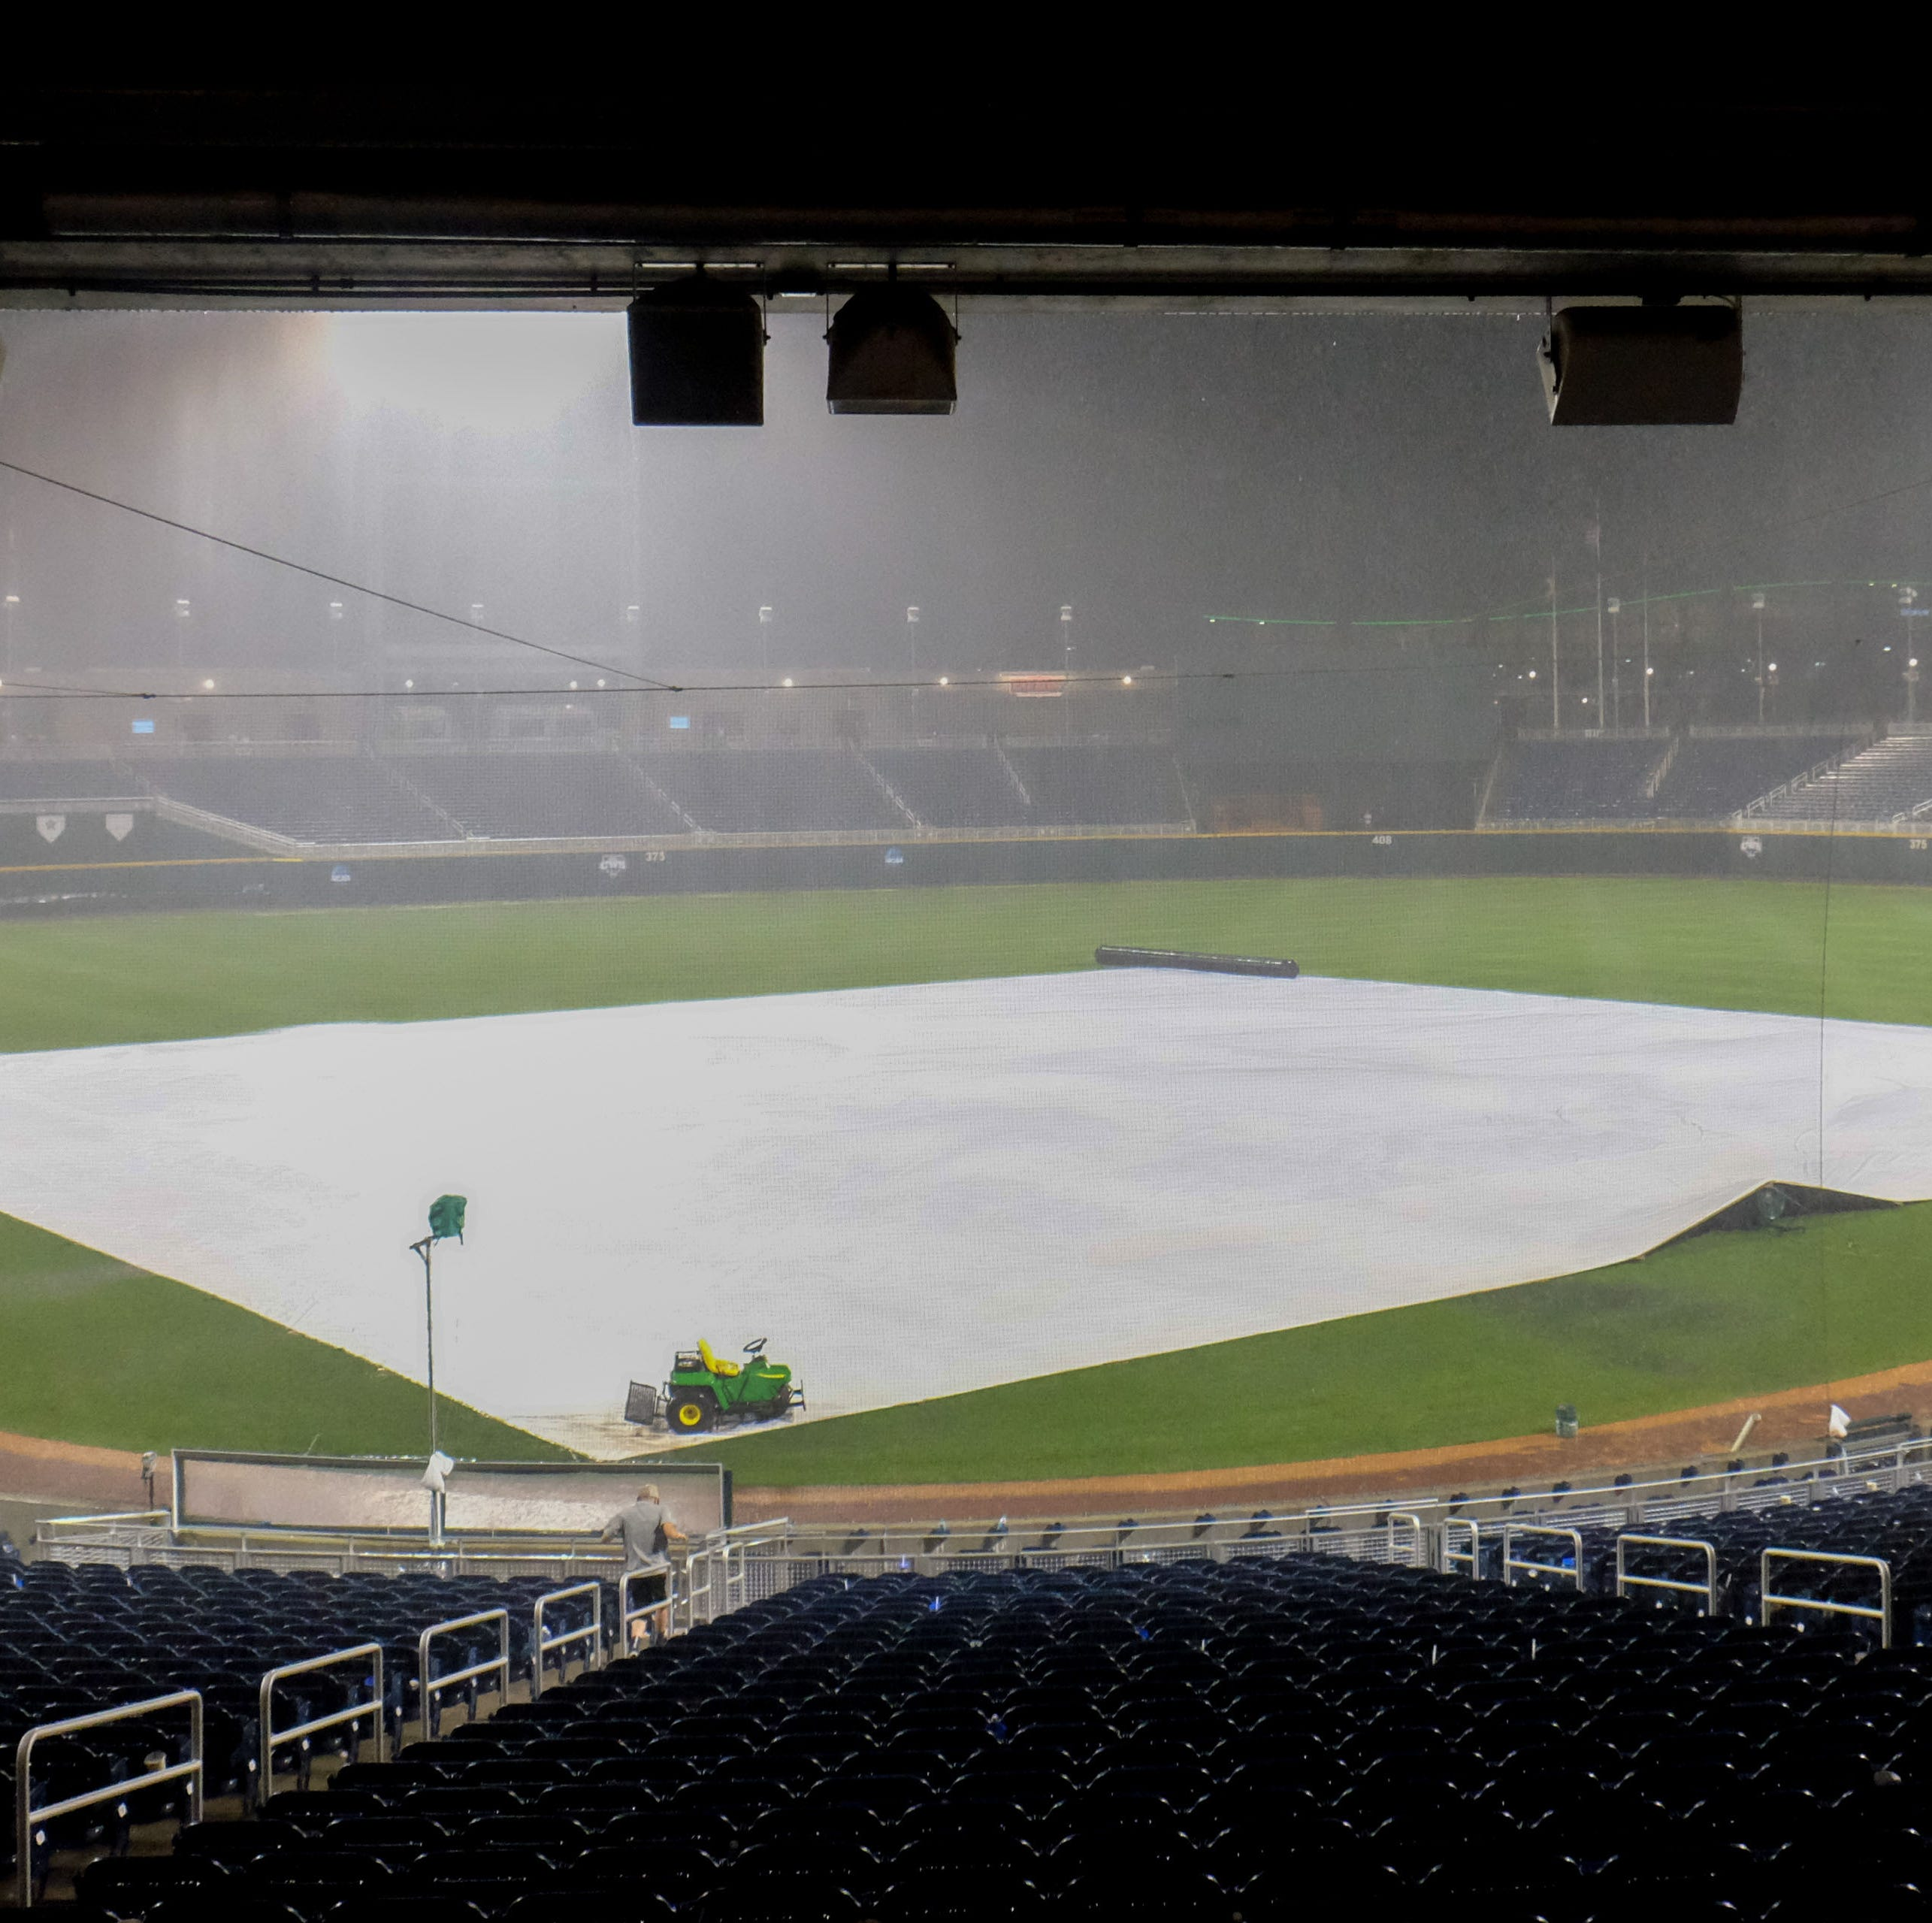 Iowa's Big Ten Tournament game against Nebraska postponed until Friday